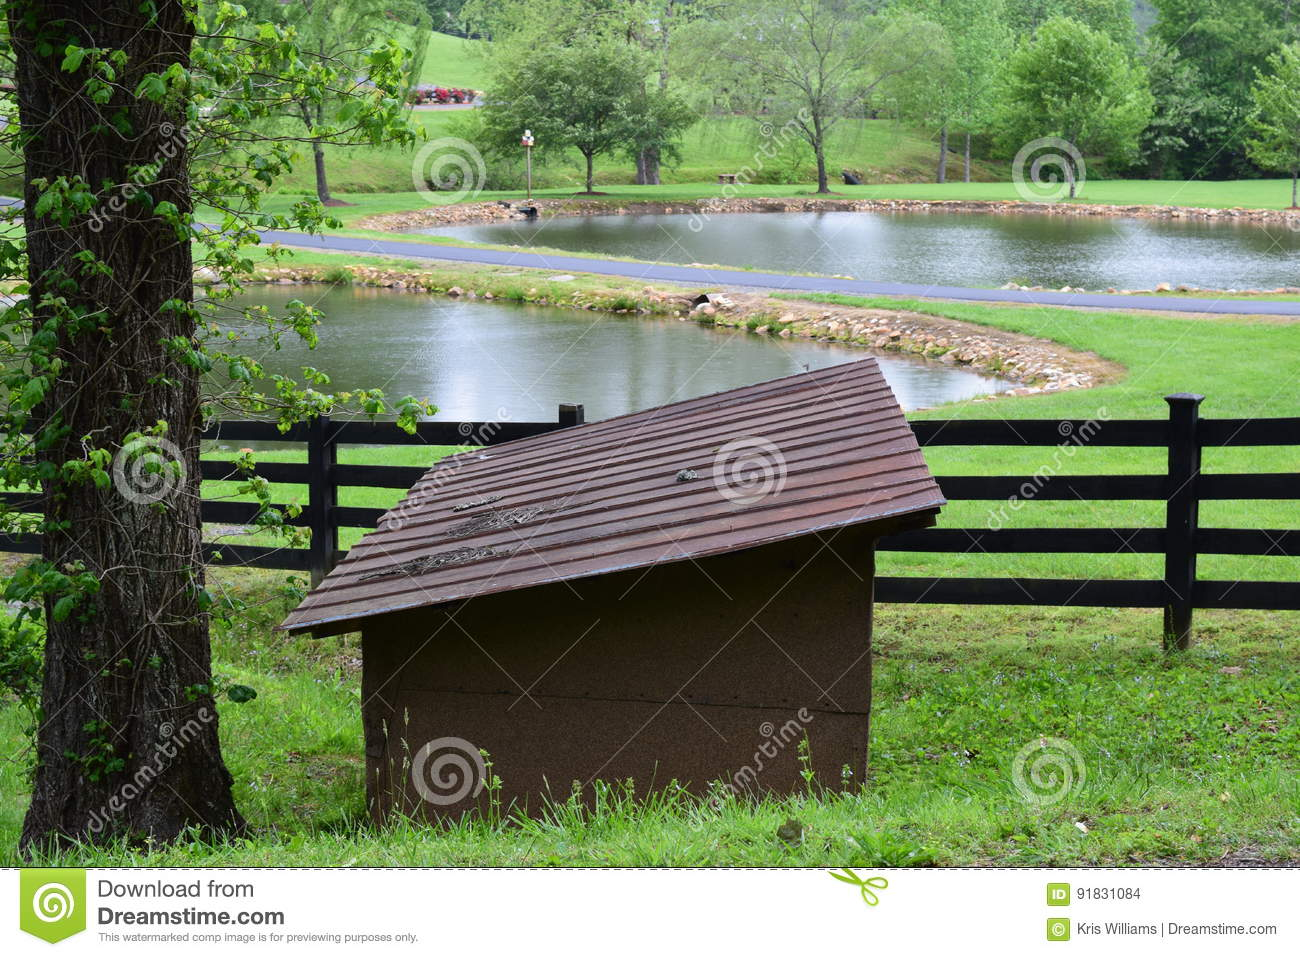 Western NC rural country mountain farm with two ponds